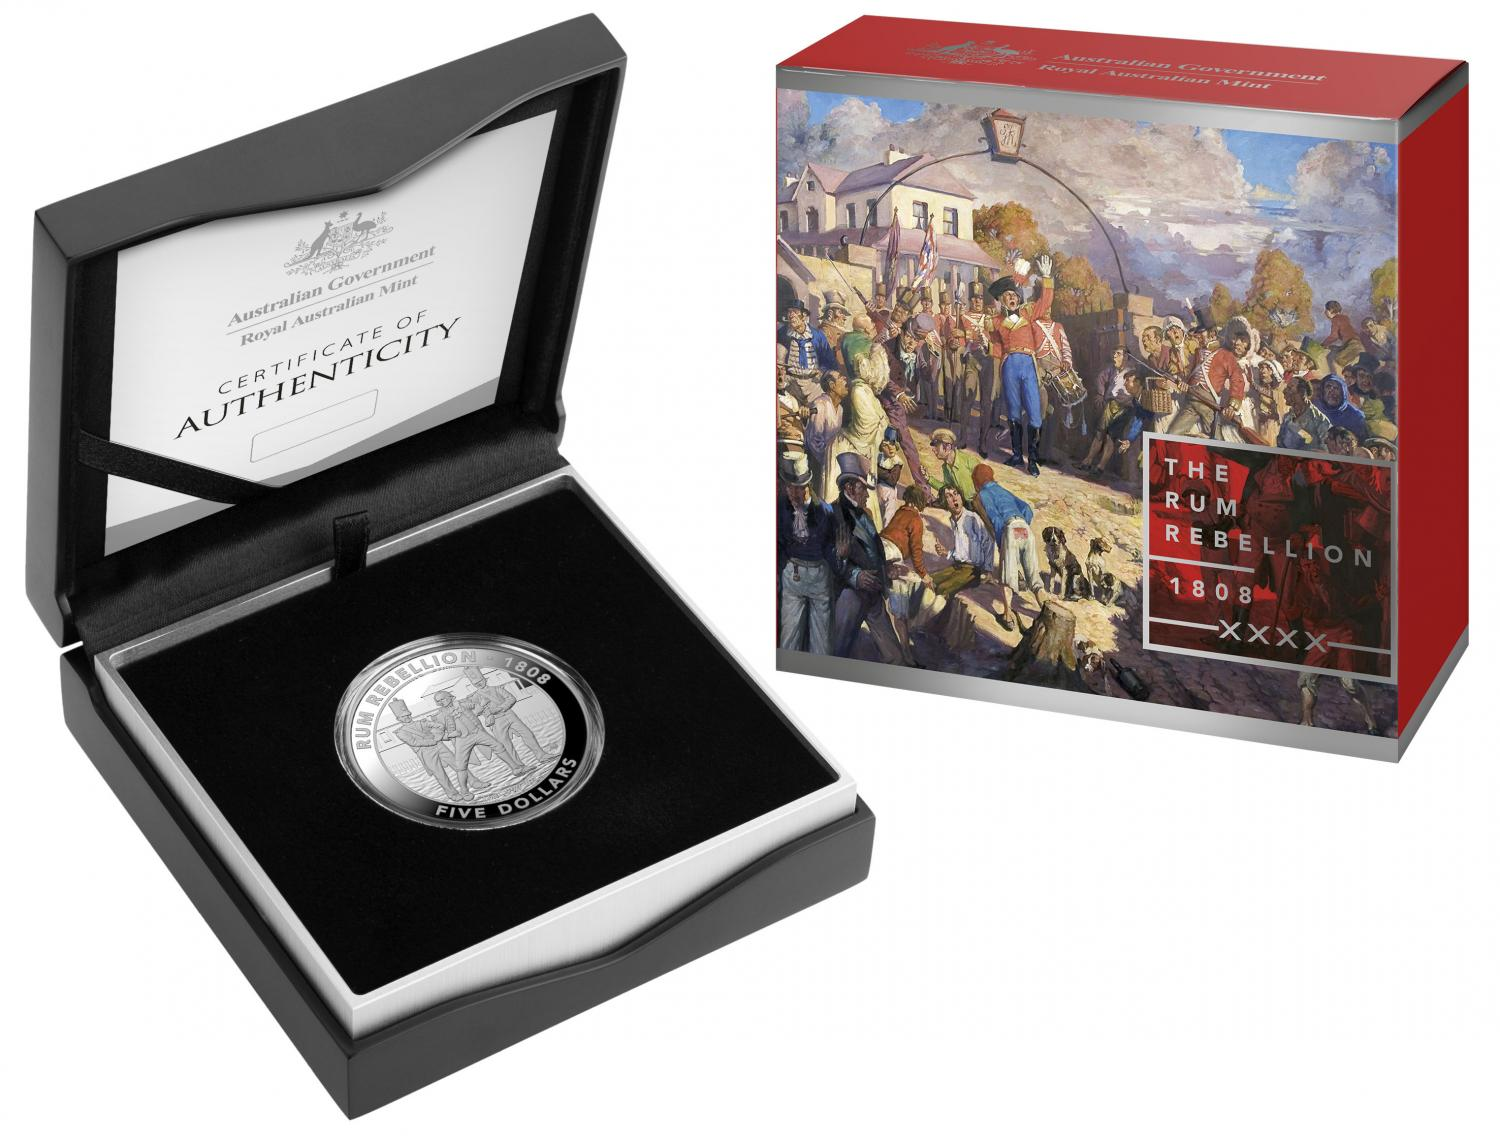 Thumbnail for 2019 Mutiny and the Rebellion $5.00 Silver Proof - The Rum Rebellion